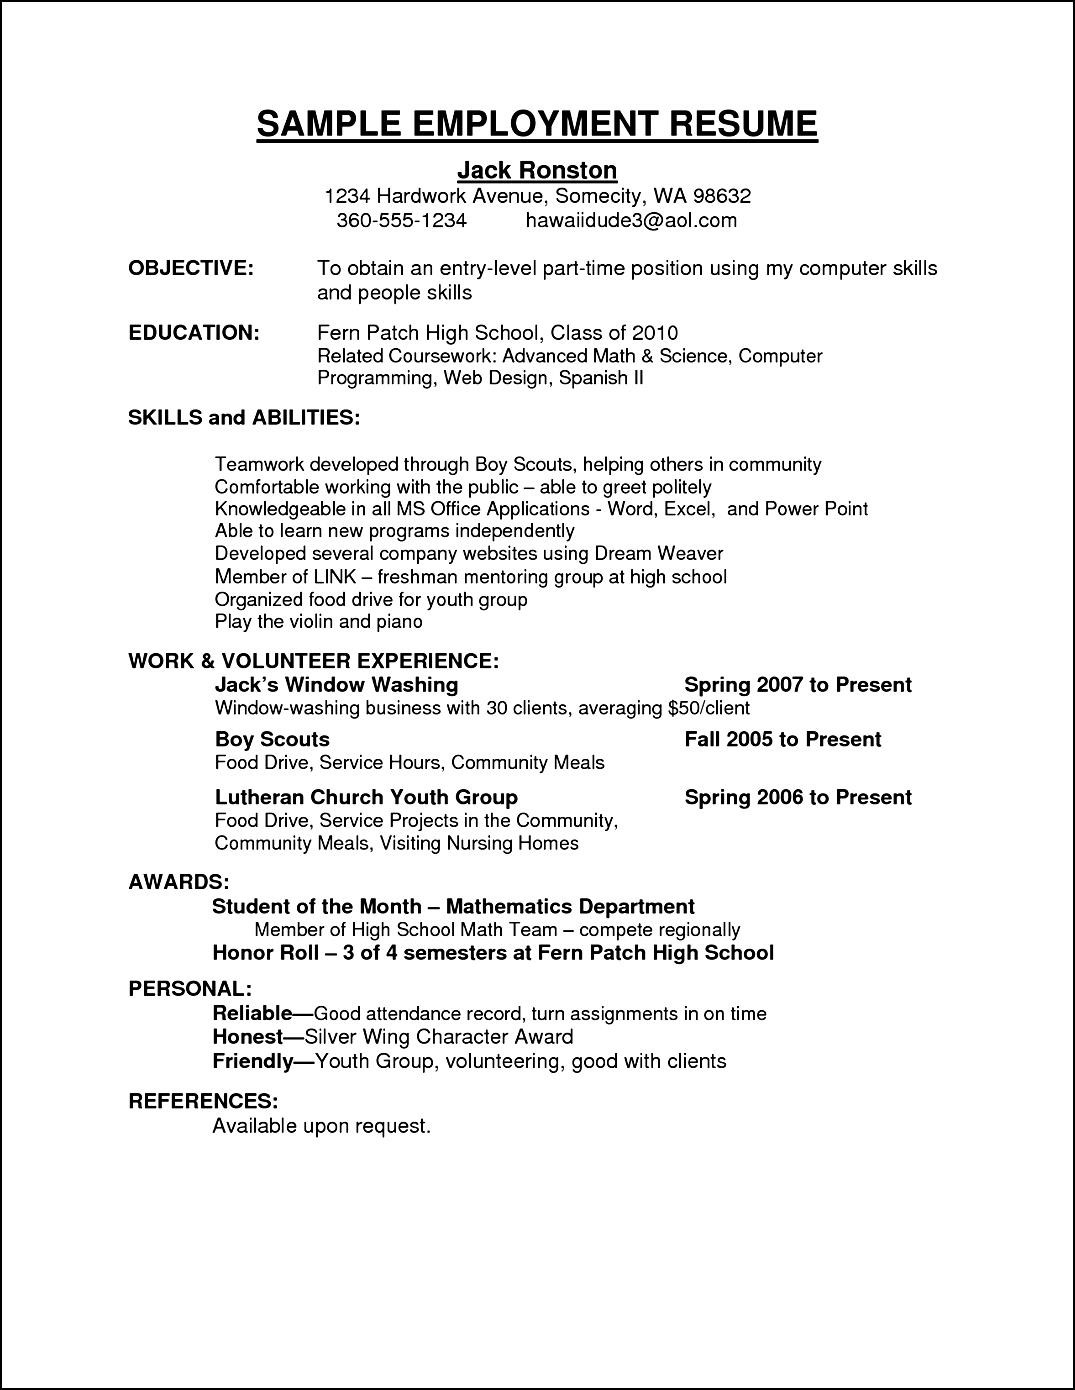 sample curriculum vitae for employment